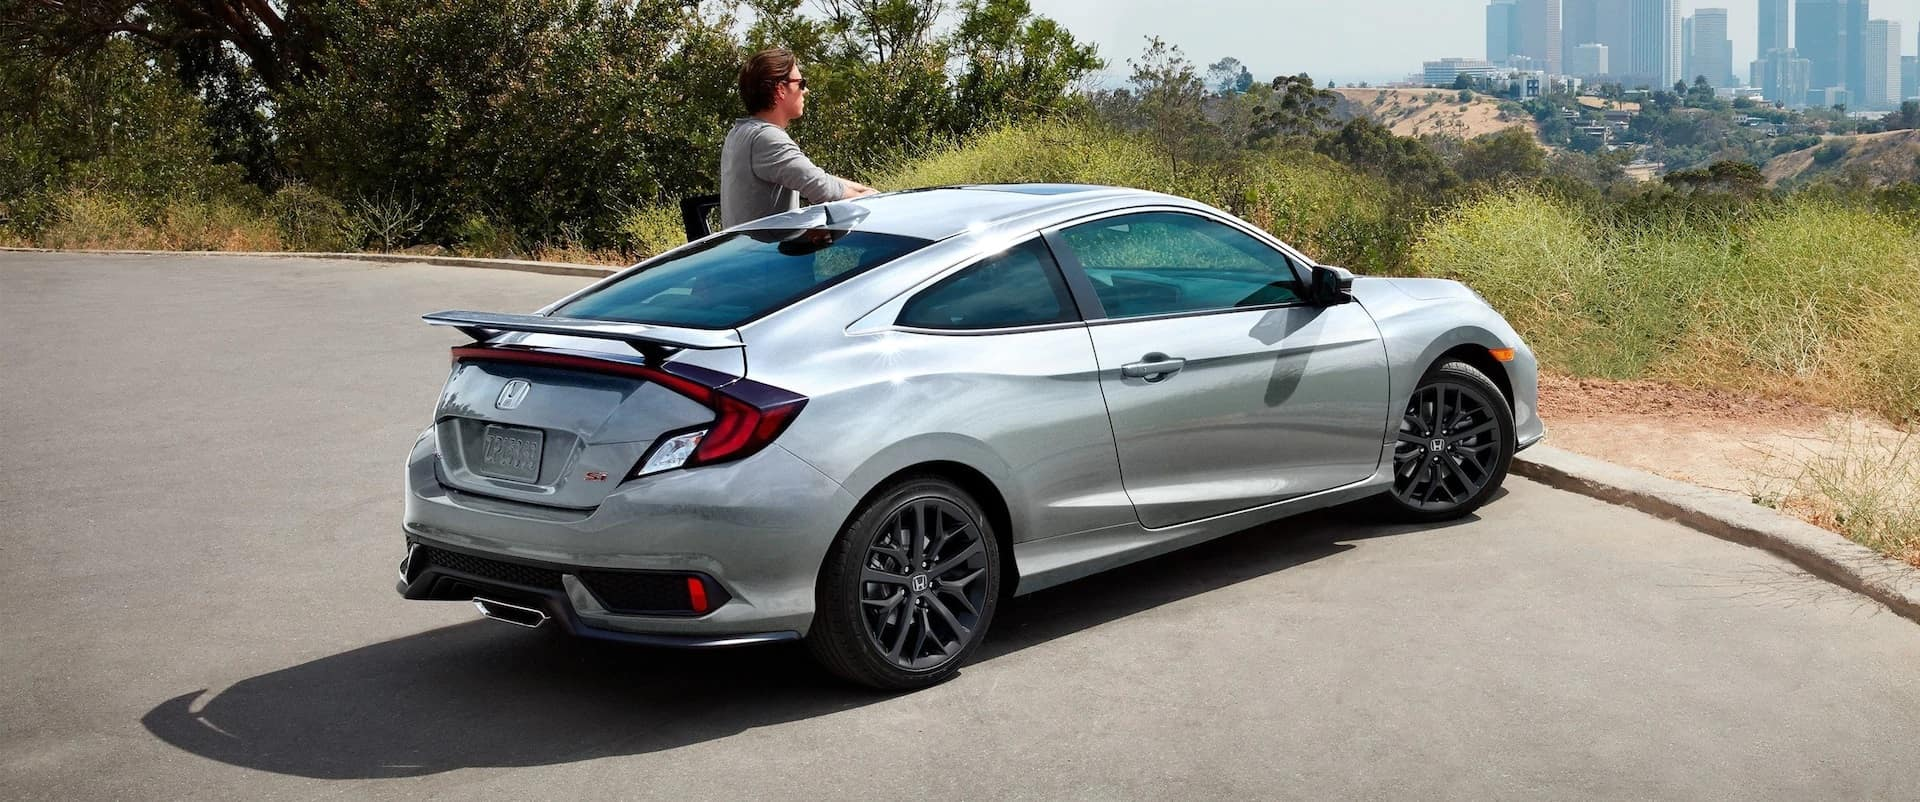 Honda_Civic_Si_SIlver_Parked_Outside_City